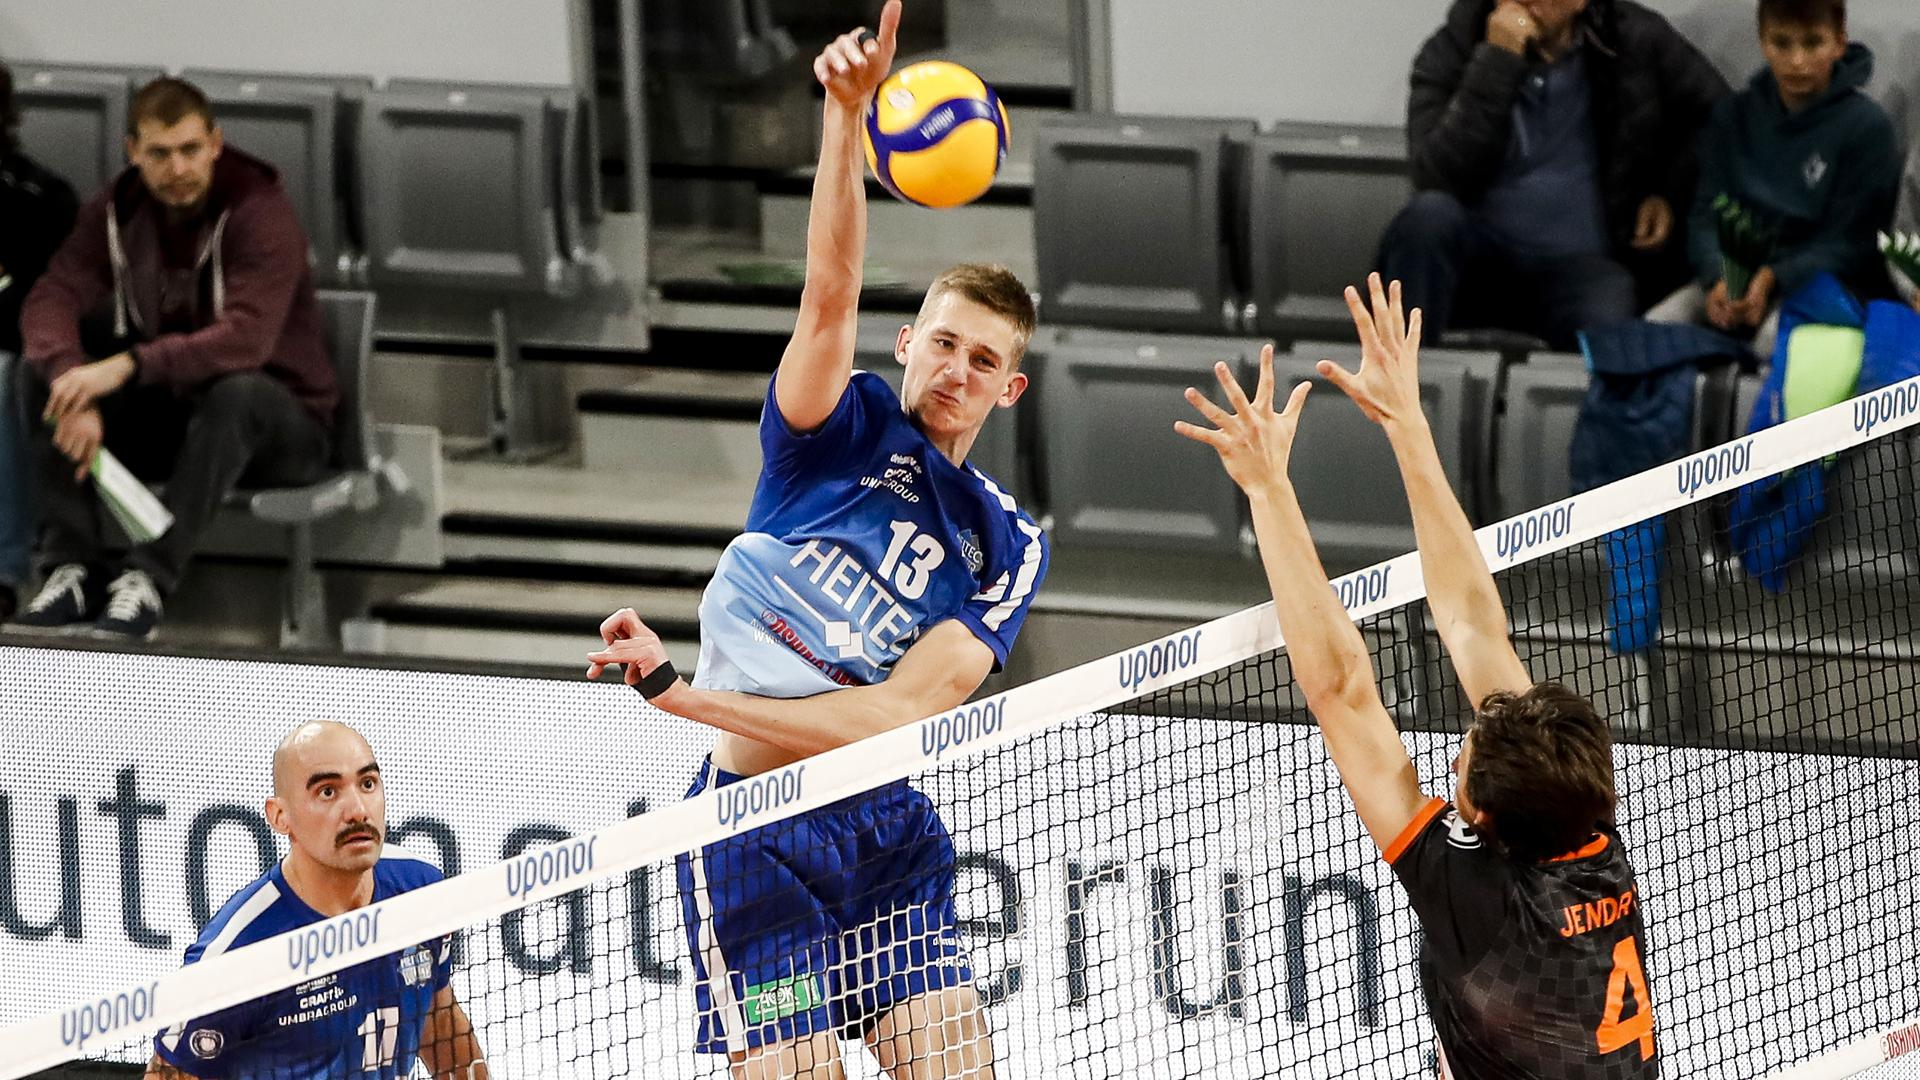 links Mathäus Jurkovics Heitec Volleys, 13 rechts Jeffrey Jendryk II Berlin Recycling Volleys, 04 Heitec Volleys - Berlin Recycling Volleys / Volleyball Bundesliga / Saison 2019/20 / Spieltag 8 / 24.11.2019 / Brose Arena Bamberg Heitec Volleys - Berlin Recycling Volleys Bamberg *** left Mathäus Jurkovics Heitec Volleys, 13 right Jeffrey Jendryk II Berlin Recycling Volleys, 04 Heitec Volleys Berlin Recycling Volleys Volleyball Bundesliga Season 2019 20 Matchday 8 24 11 2019 Brose Arena Bamberg Heitec Volleys Berlin Recycling Volleys Bamberg Copyright: xEibner-Pressefoto/xeerx EPdlb